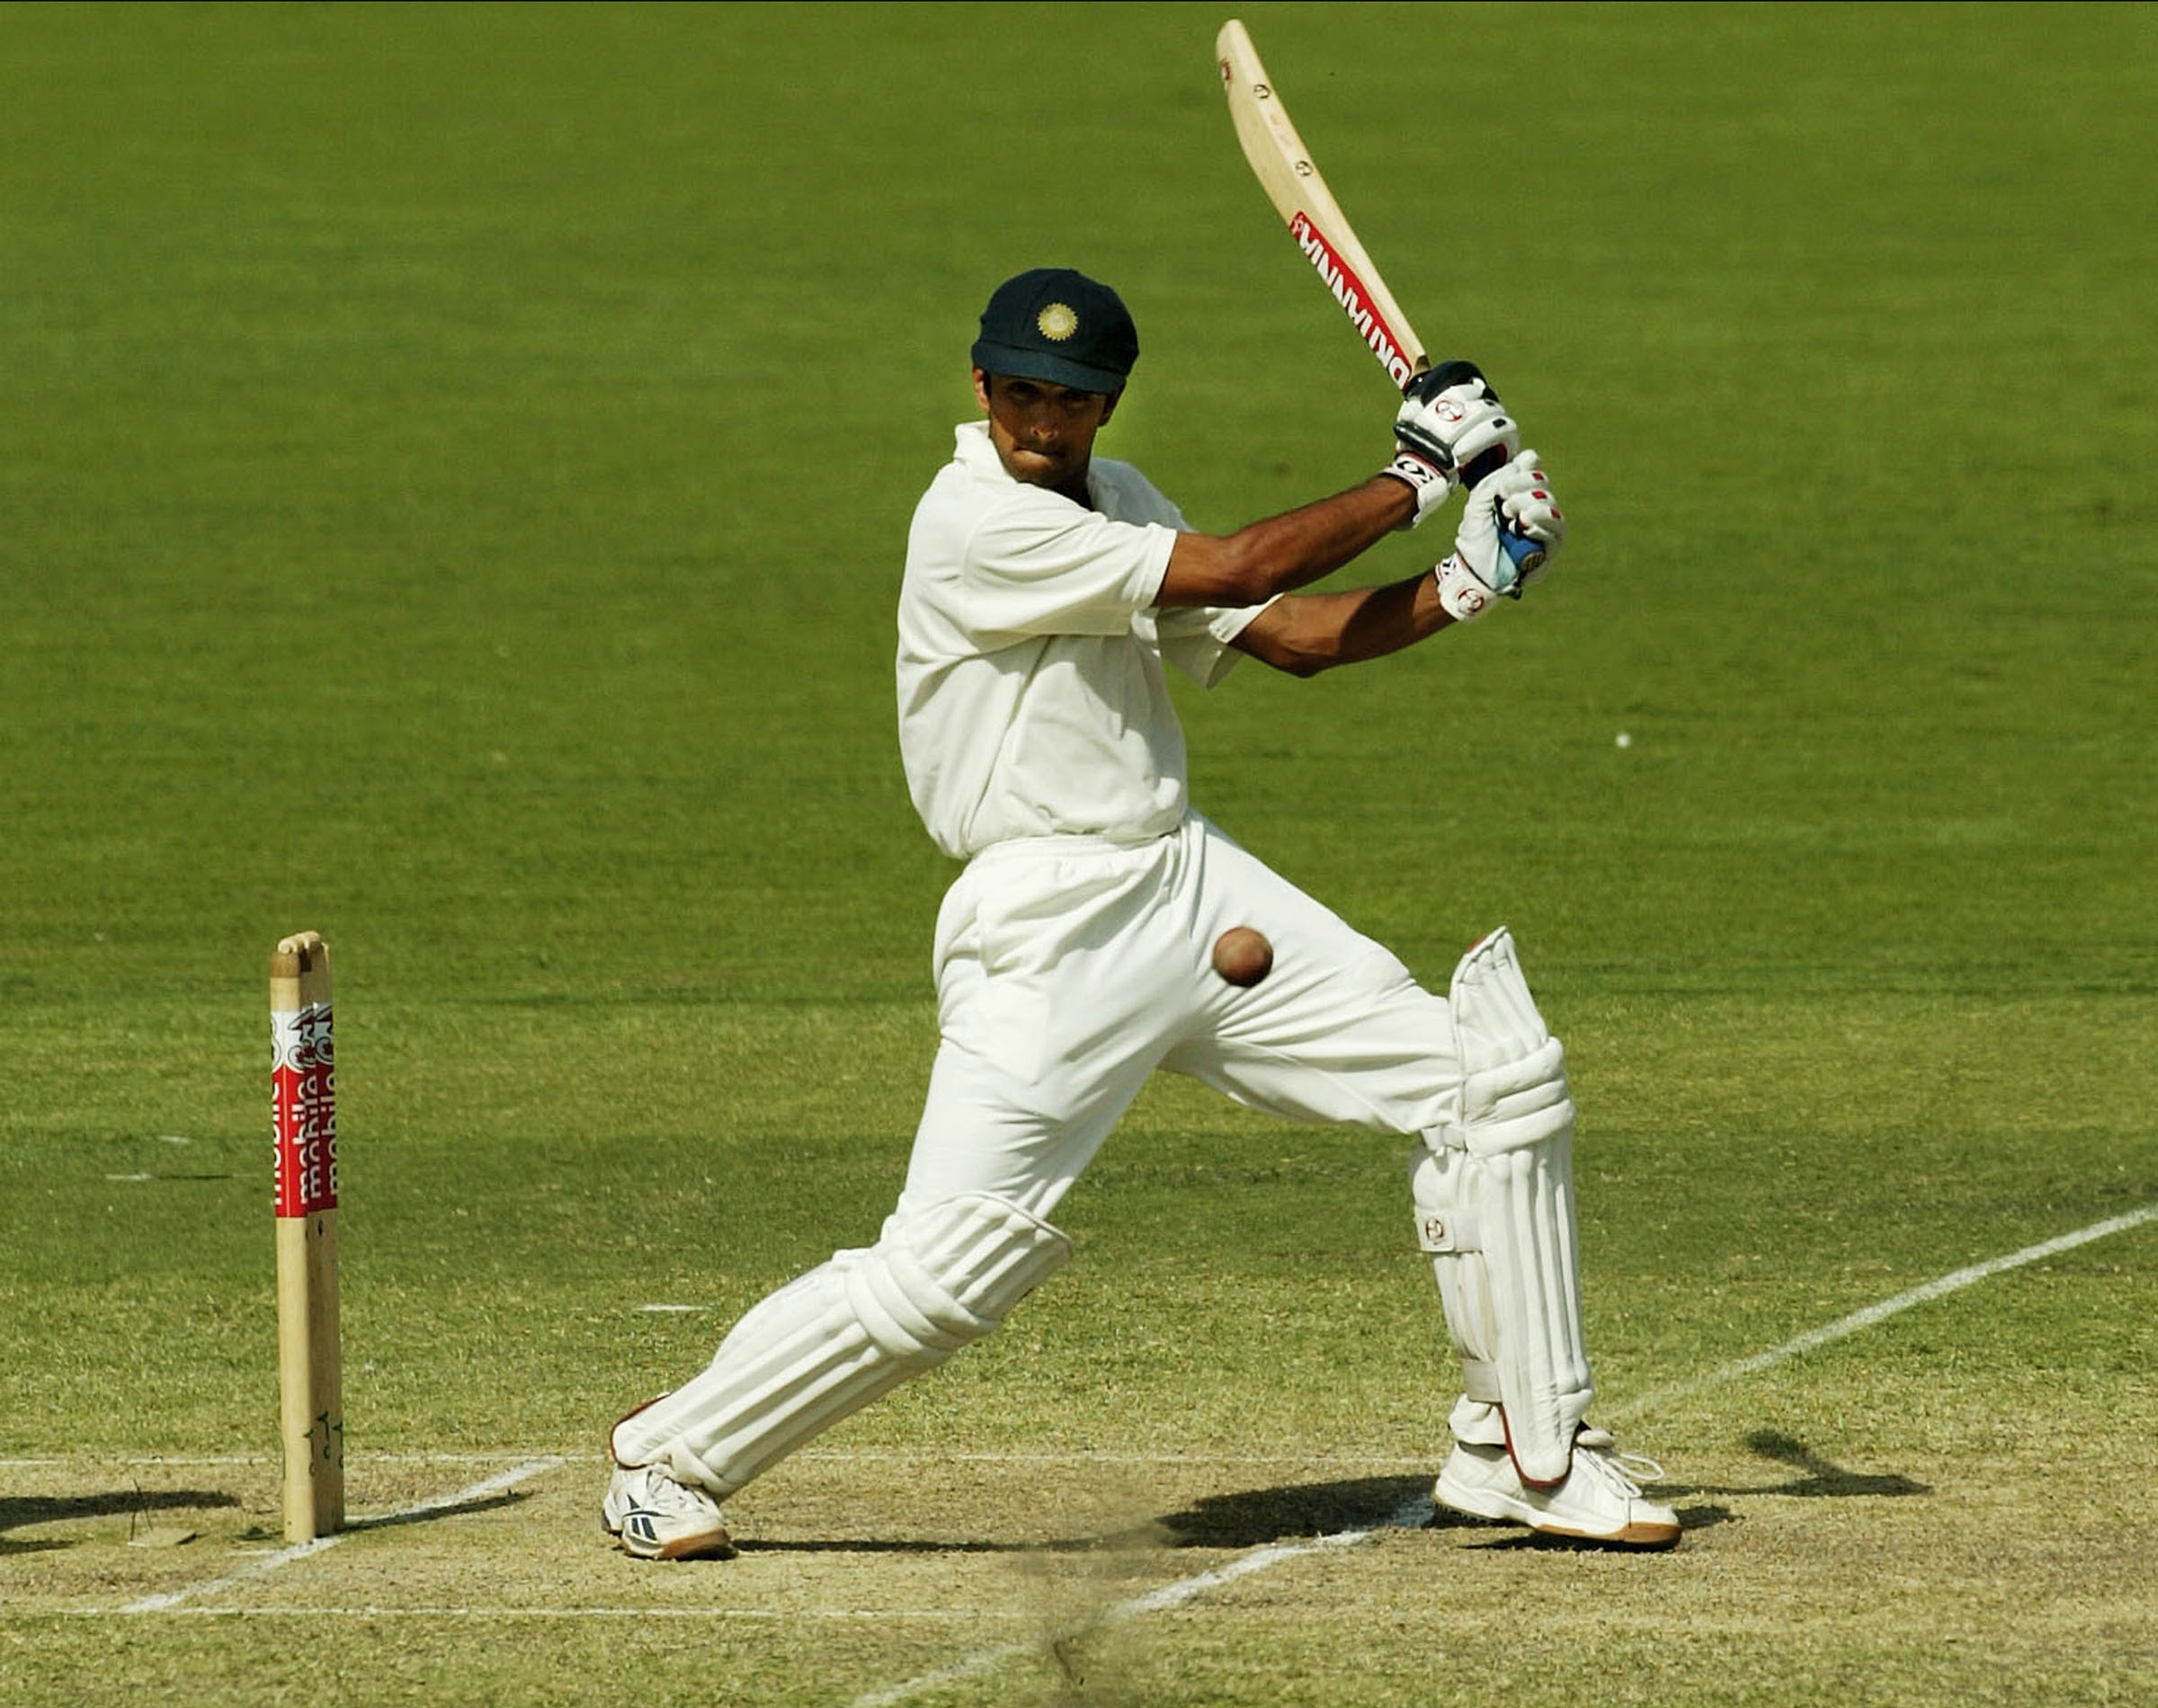 Dravid enjoyed the performance of his life at Adelaide Oval // Getty